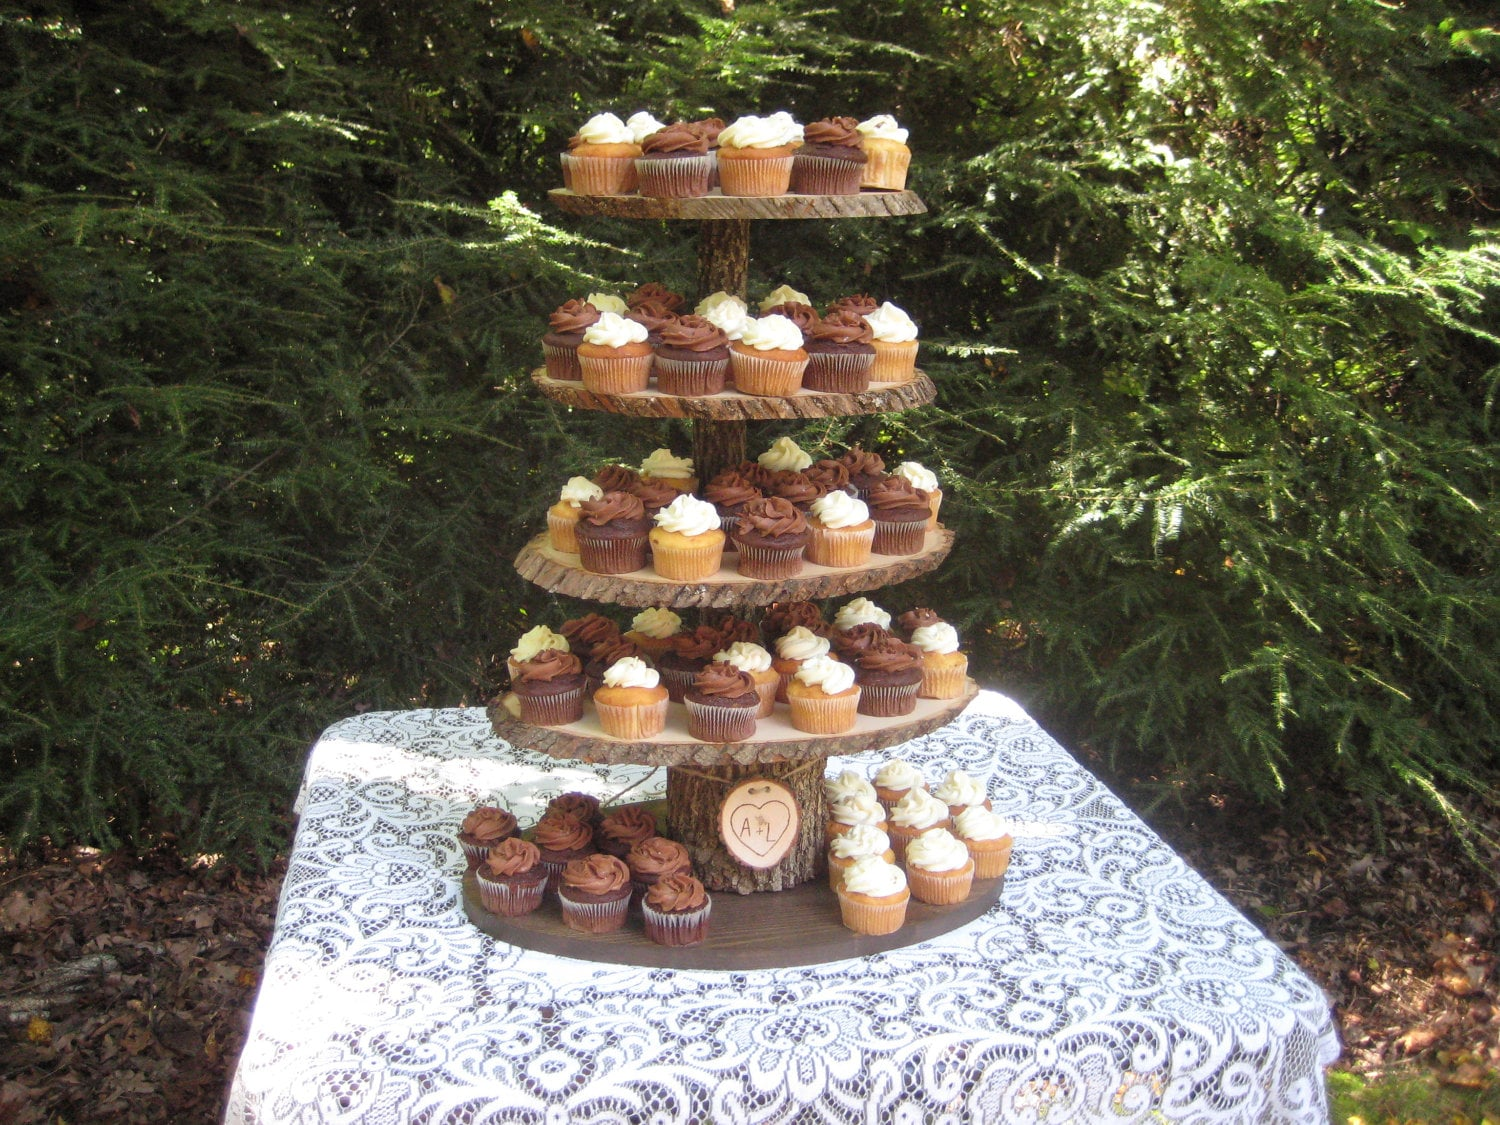 wooden cupcake wedding cake stands rustic cupcake stand wedding wood dessert bar 5 tier x large 27592